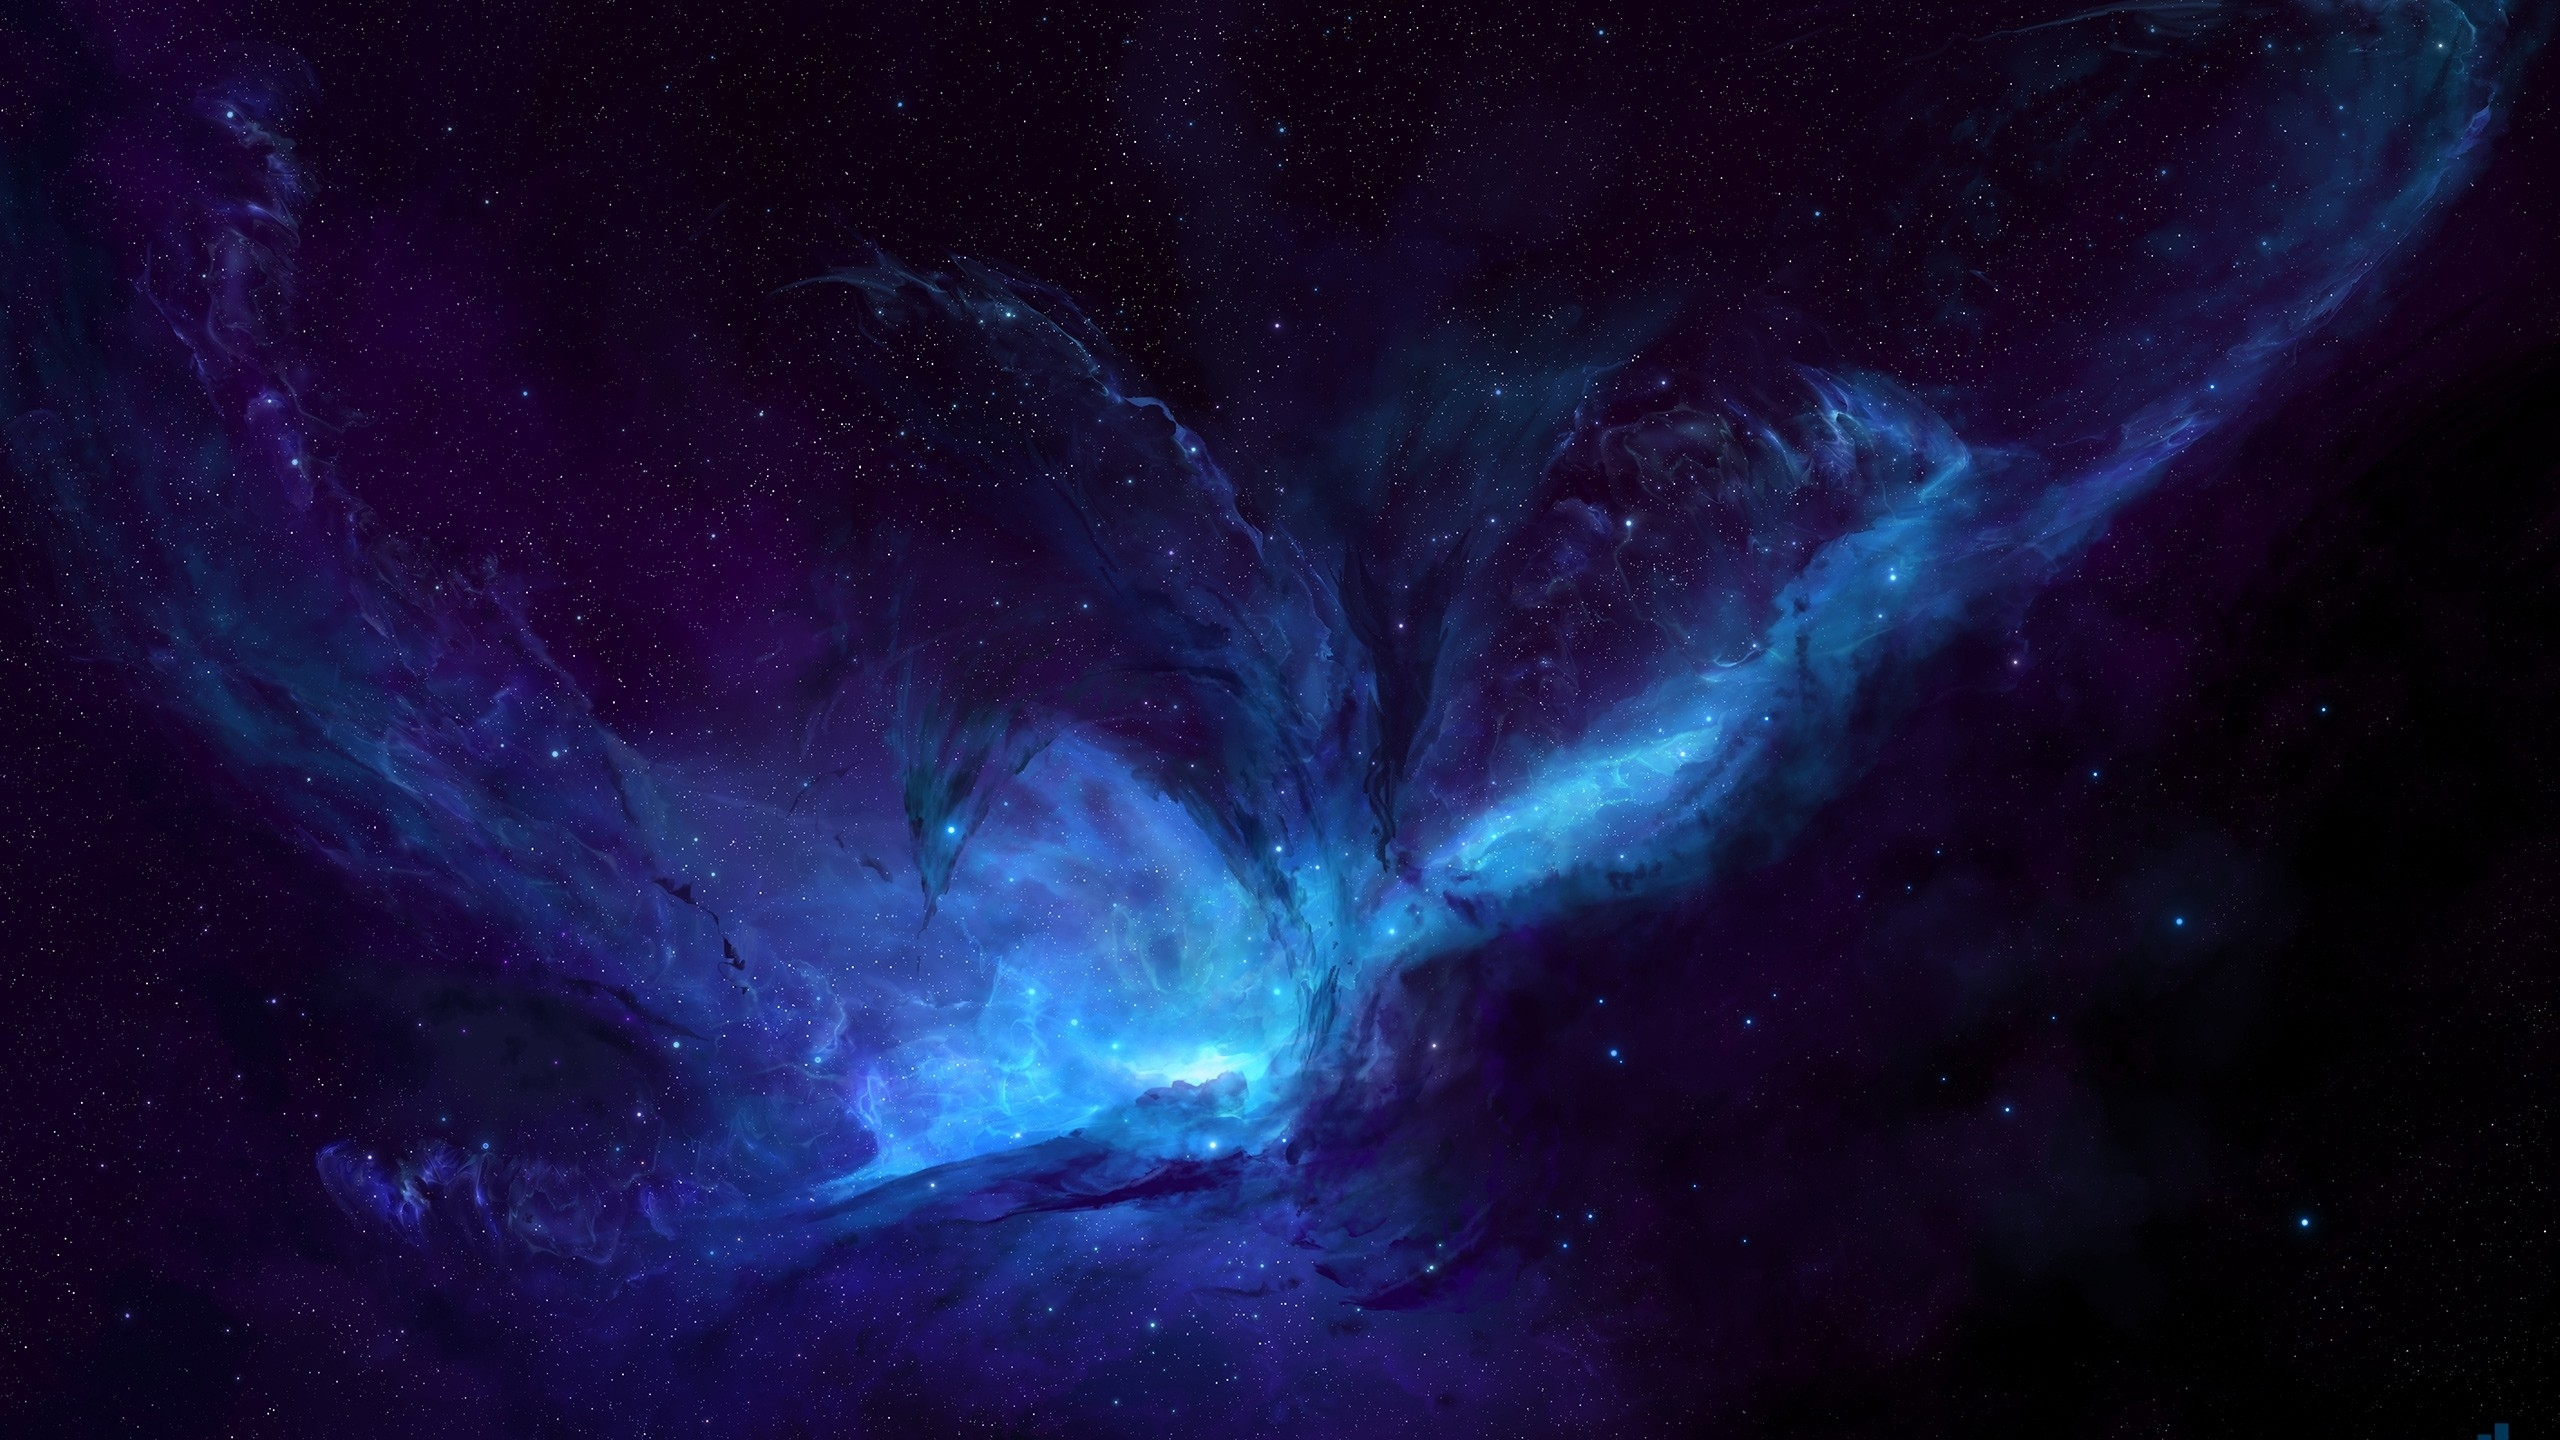 wallpaper nebula, dark space, blue space, deep, hd, space, #1777